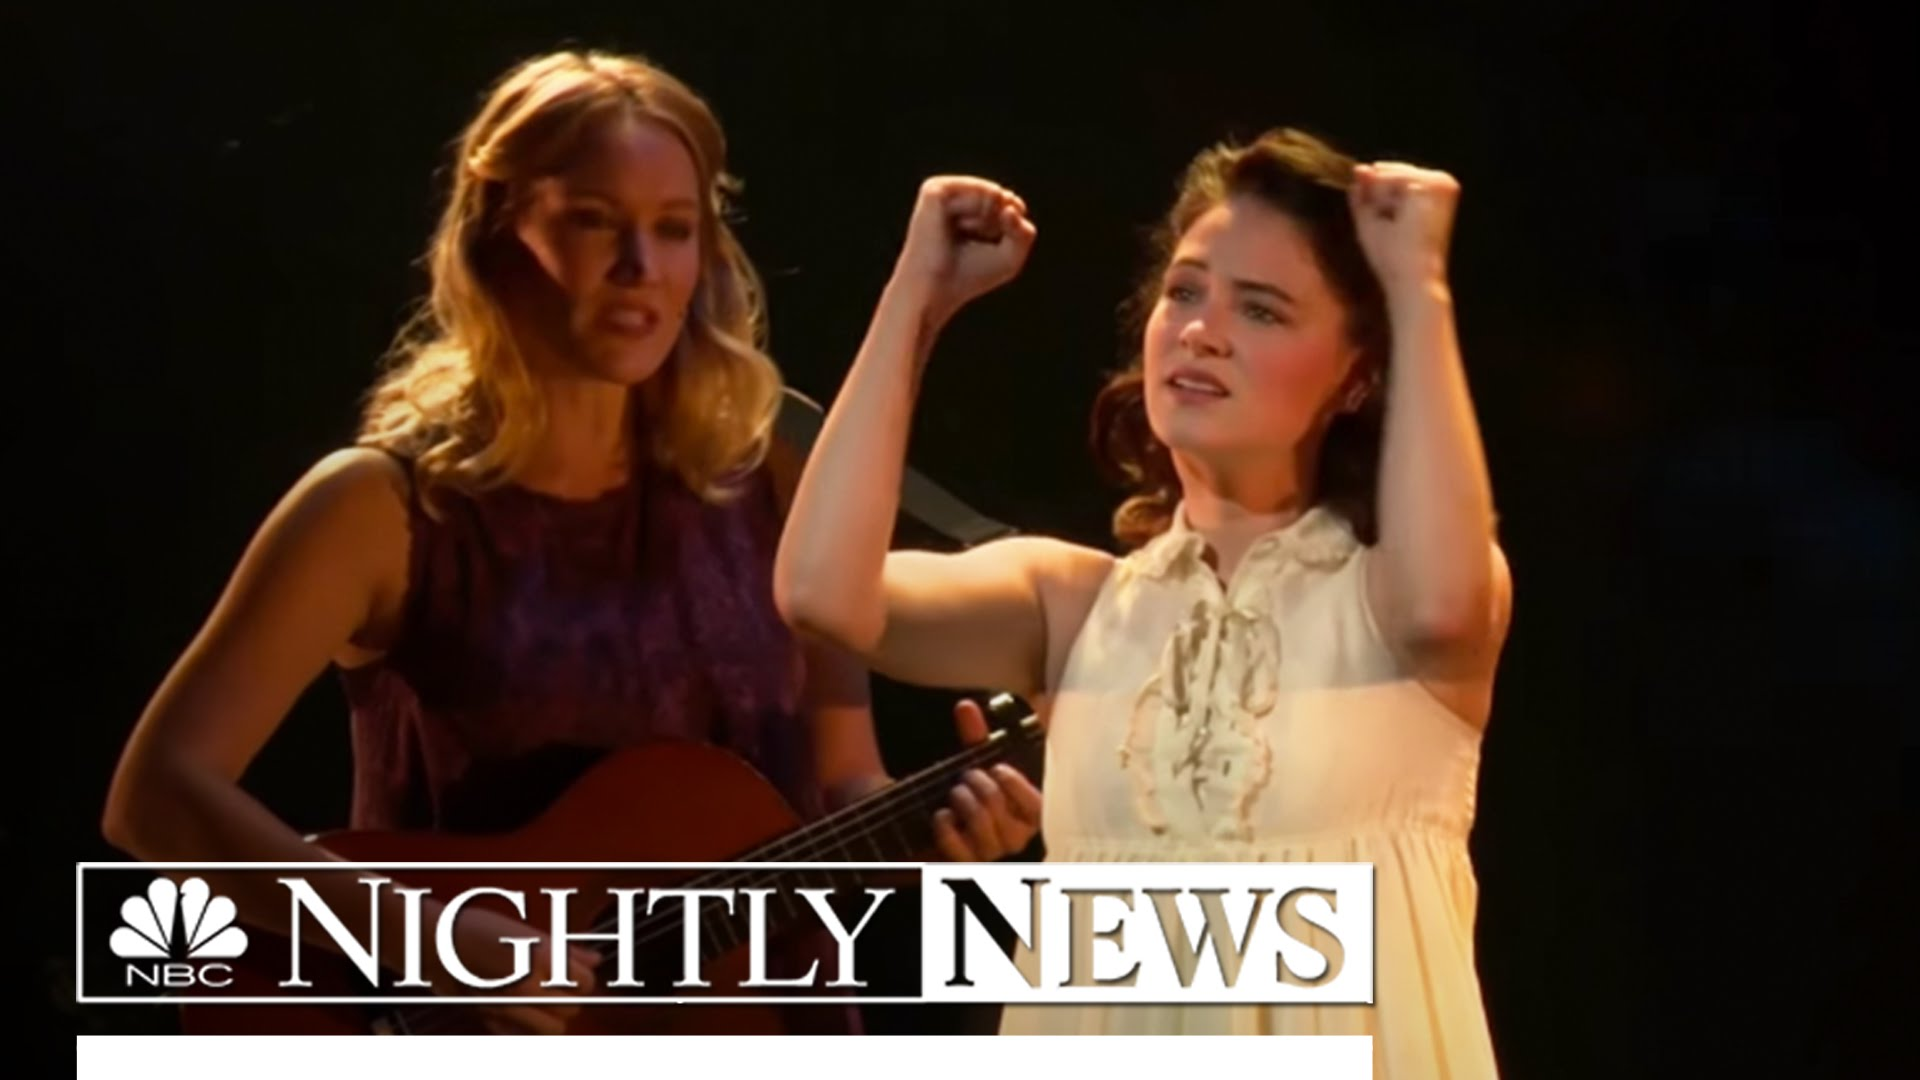 NBC's Nightly News features the groundbreaking Broadway revival of Spring Awakening